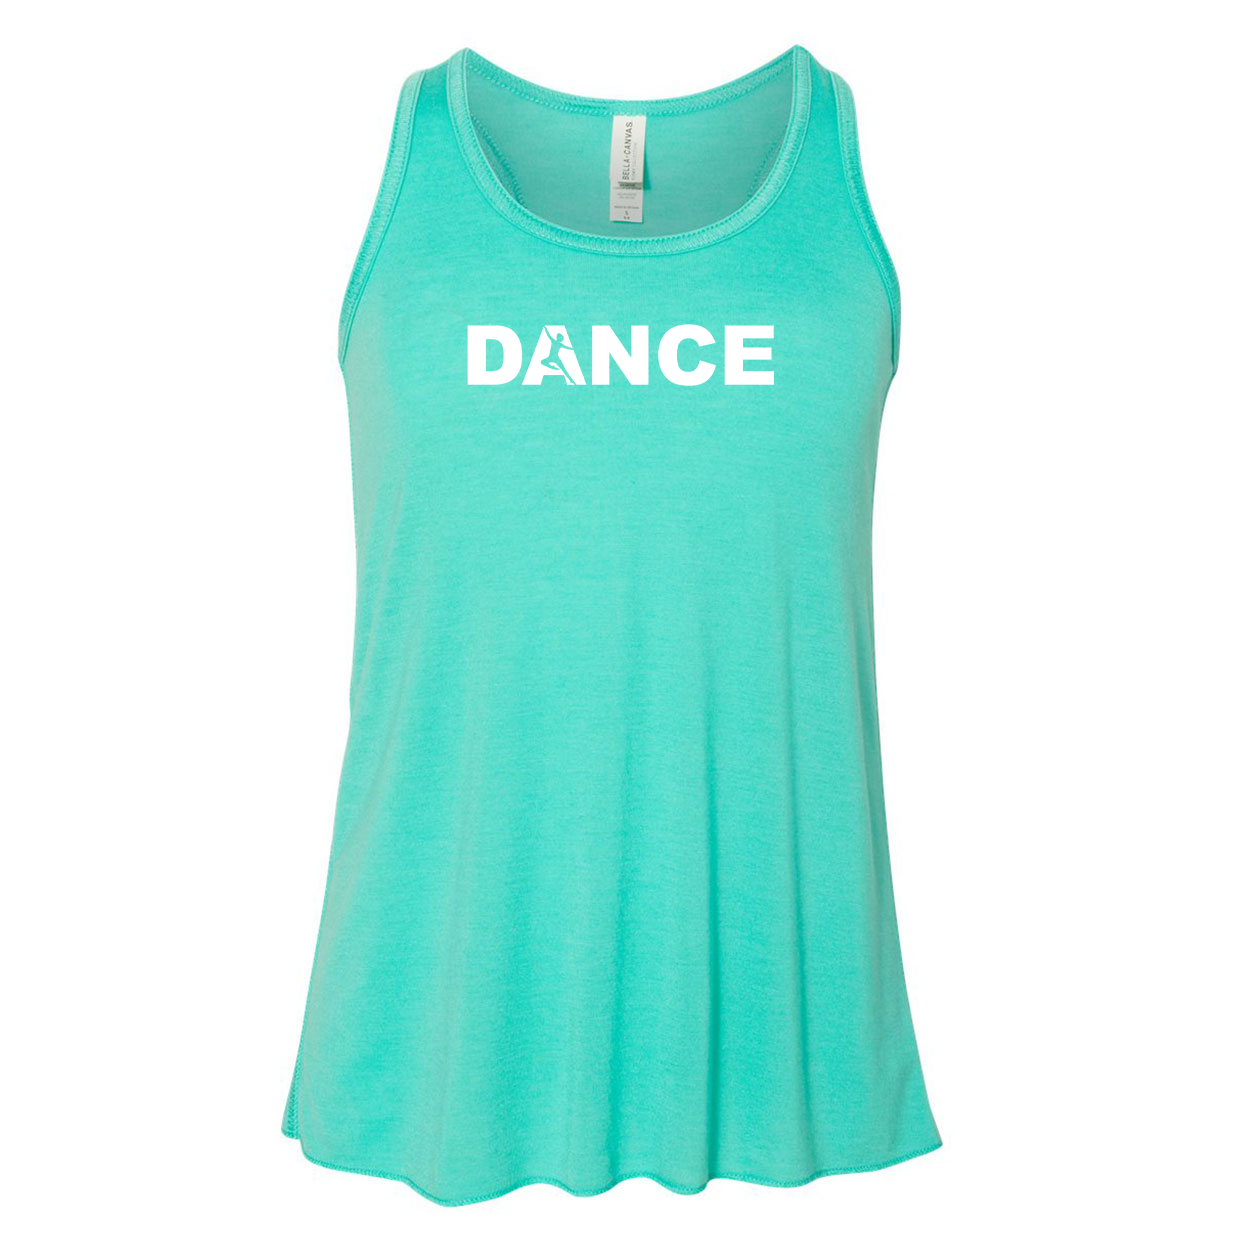 Dance Silhouette Logo Classic Youth Girls Flowy Racerback Tank Top Teal (White Logo)